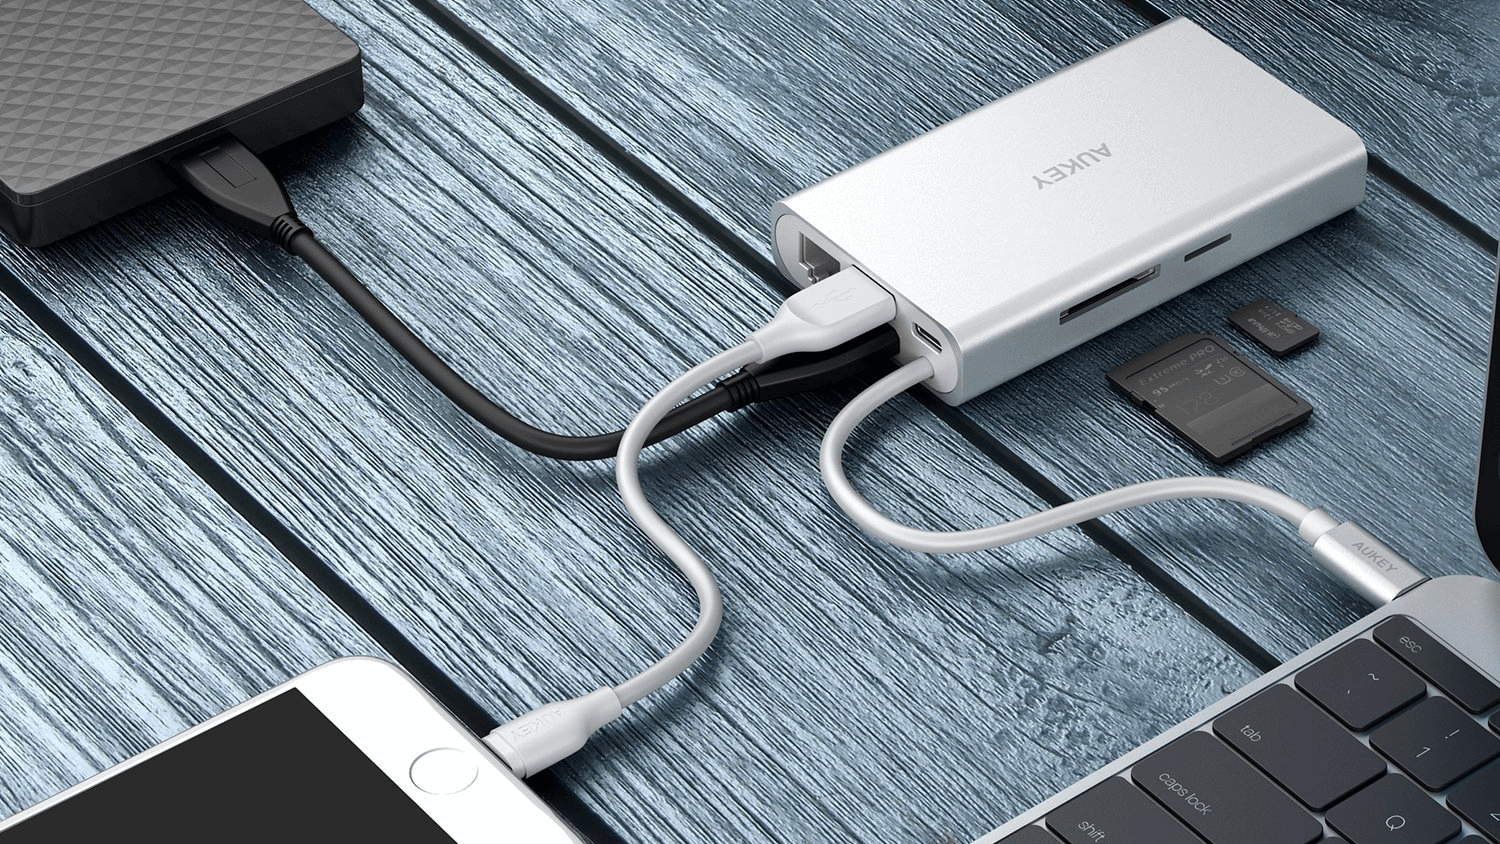 Aukey USB-C Multiport Adapter